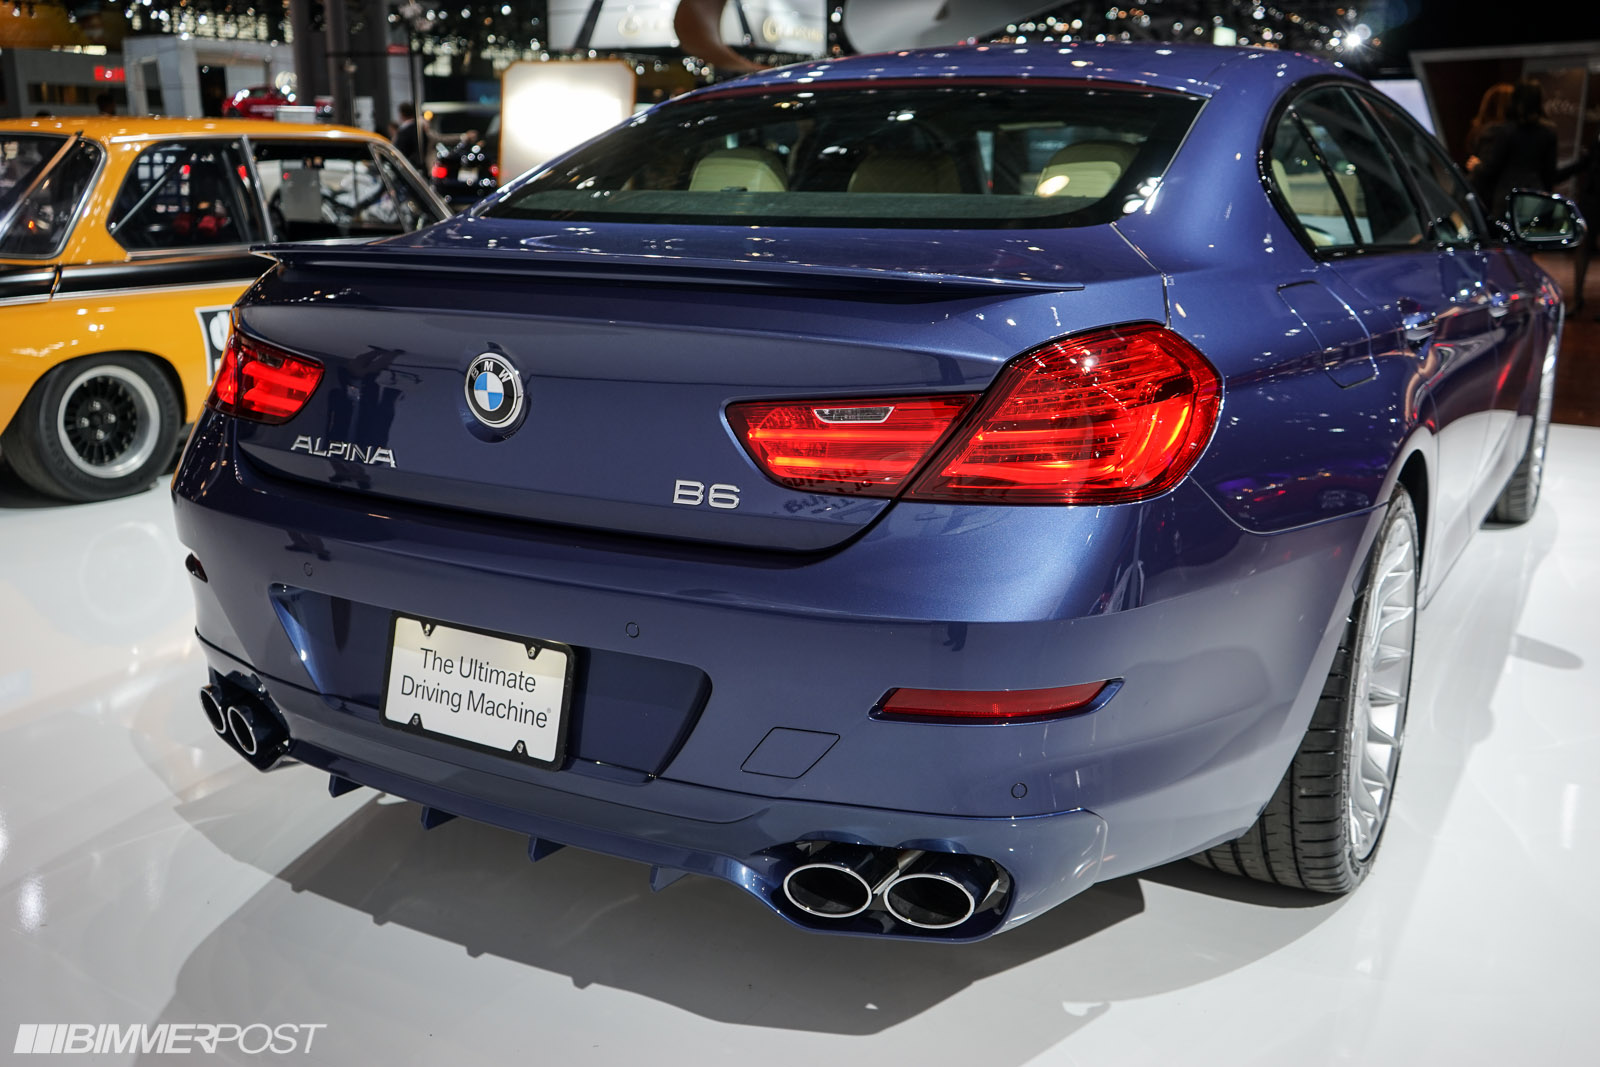 bmw x5 and x6 forum f15 f16 view single post nyias 2015 bmw cars. Black Bedroom Furniture Sets. Home Design Ideas